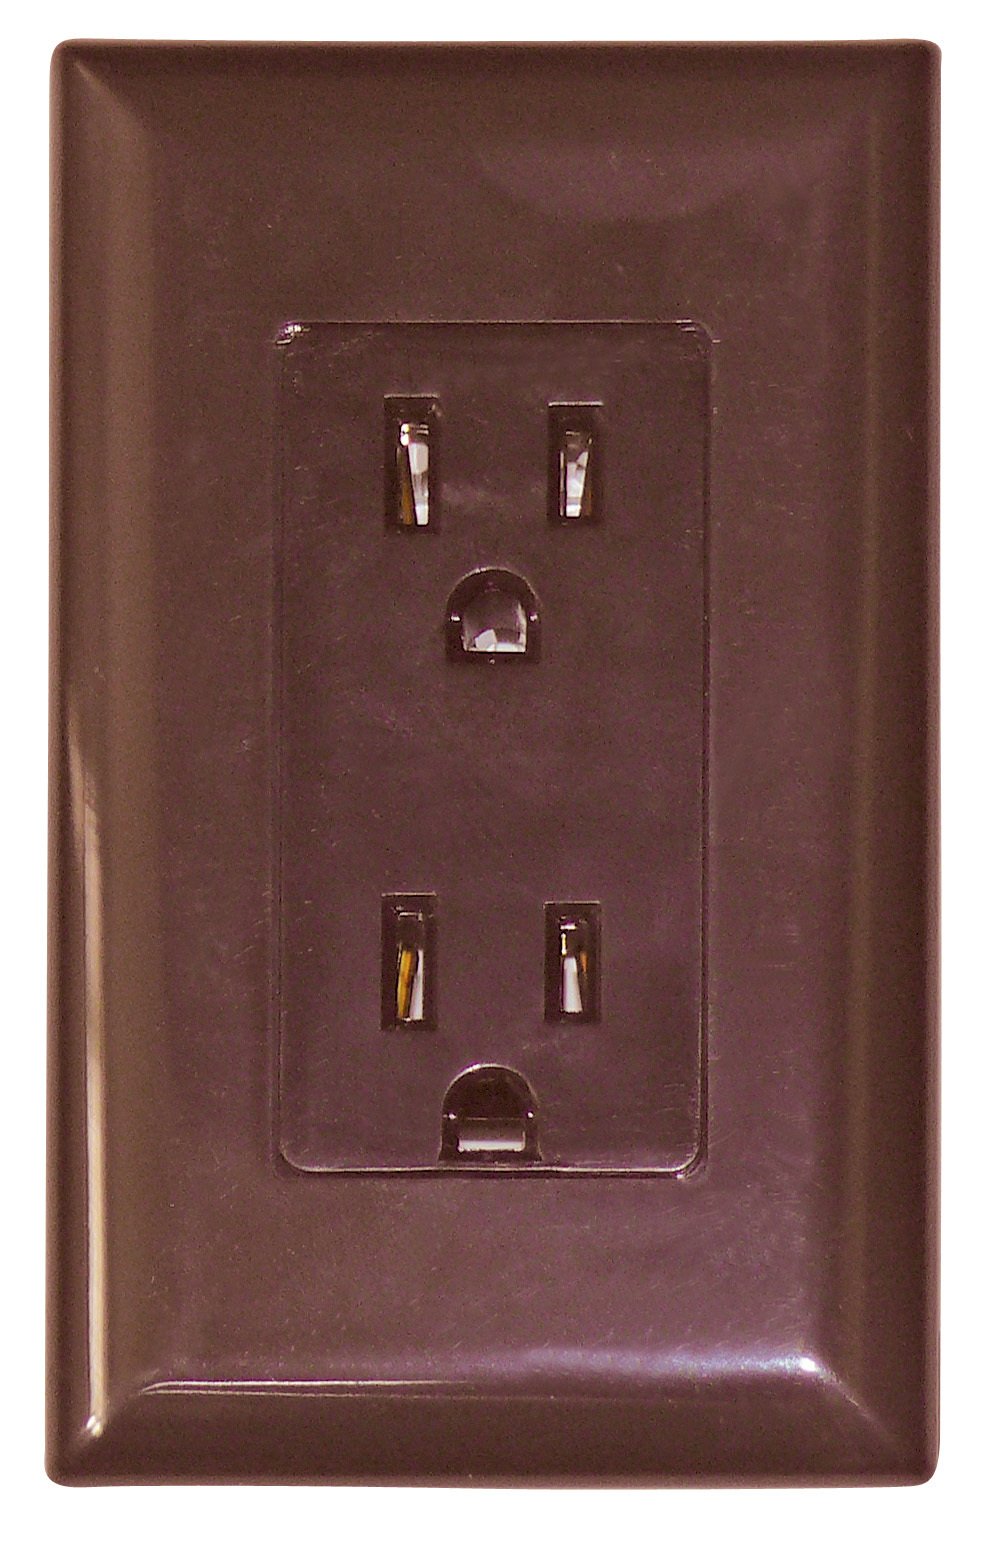 15 Amp Decor Receptacle With Cover - Brown WDR15BR